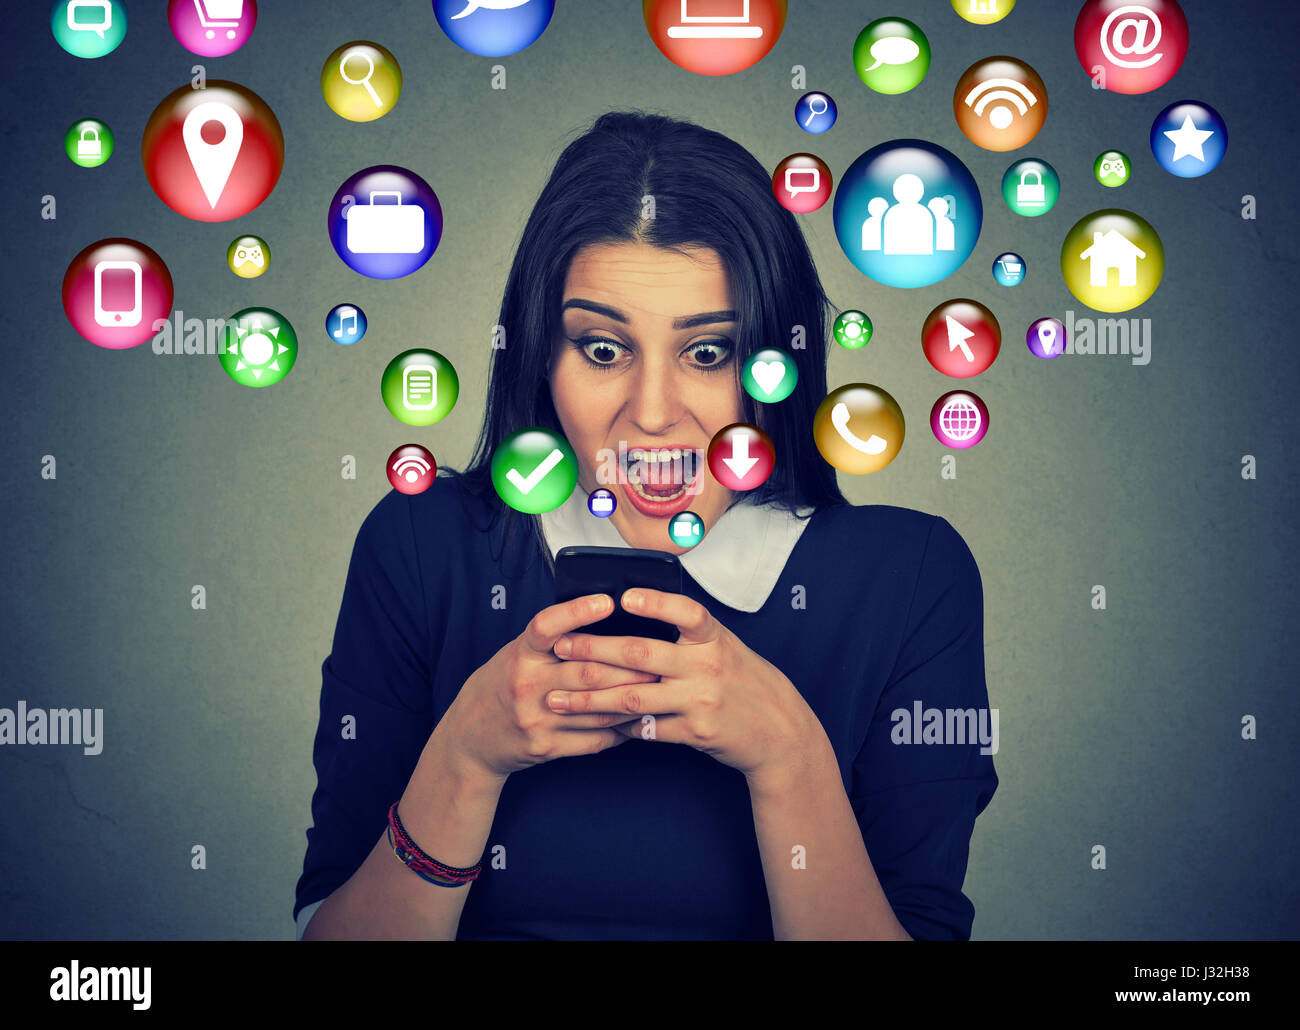 communication technology mobile high tech concept. Closeup surprised young woman using texting on smartphone with - Stock Image